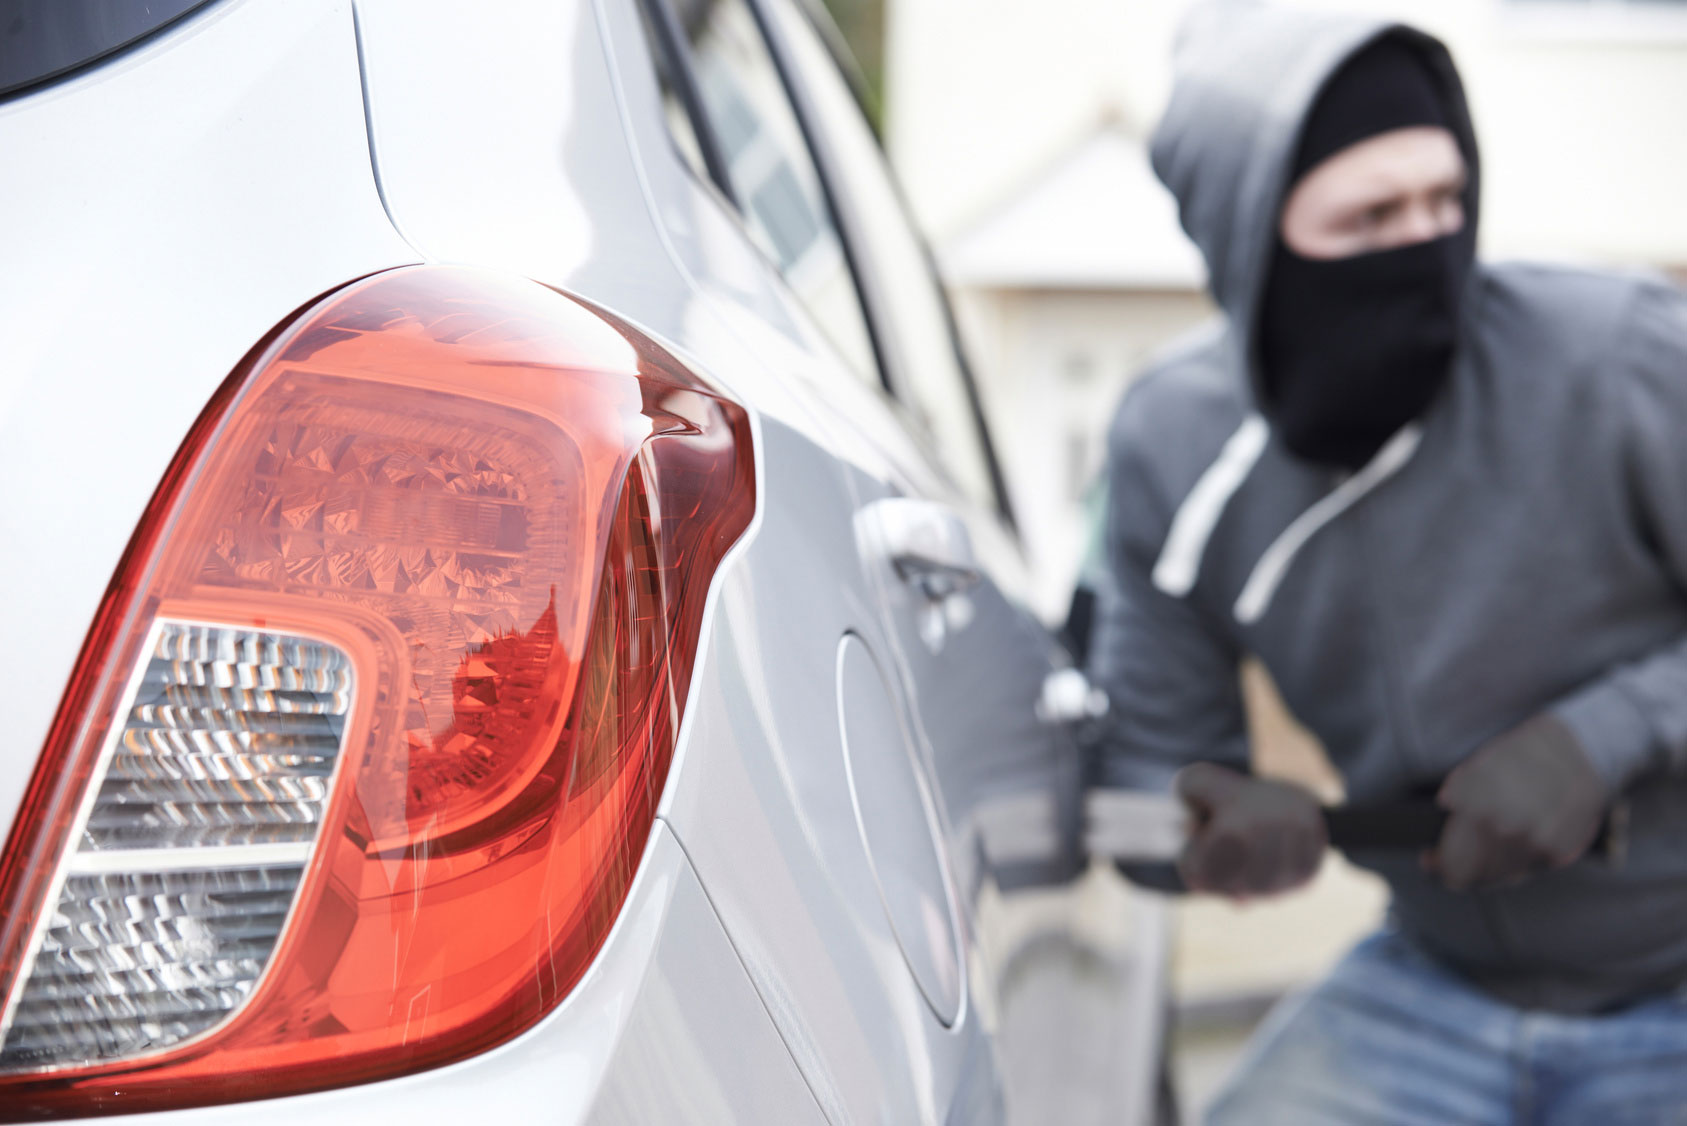 Valet Parking Car Theft Blog by American Valet